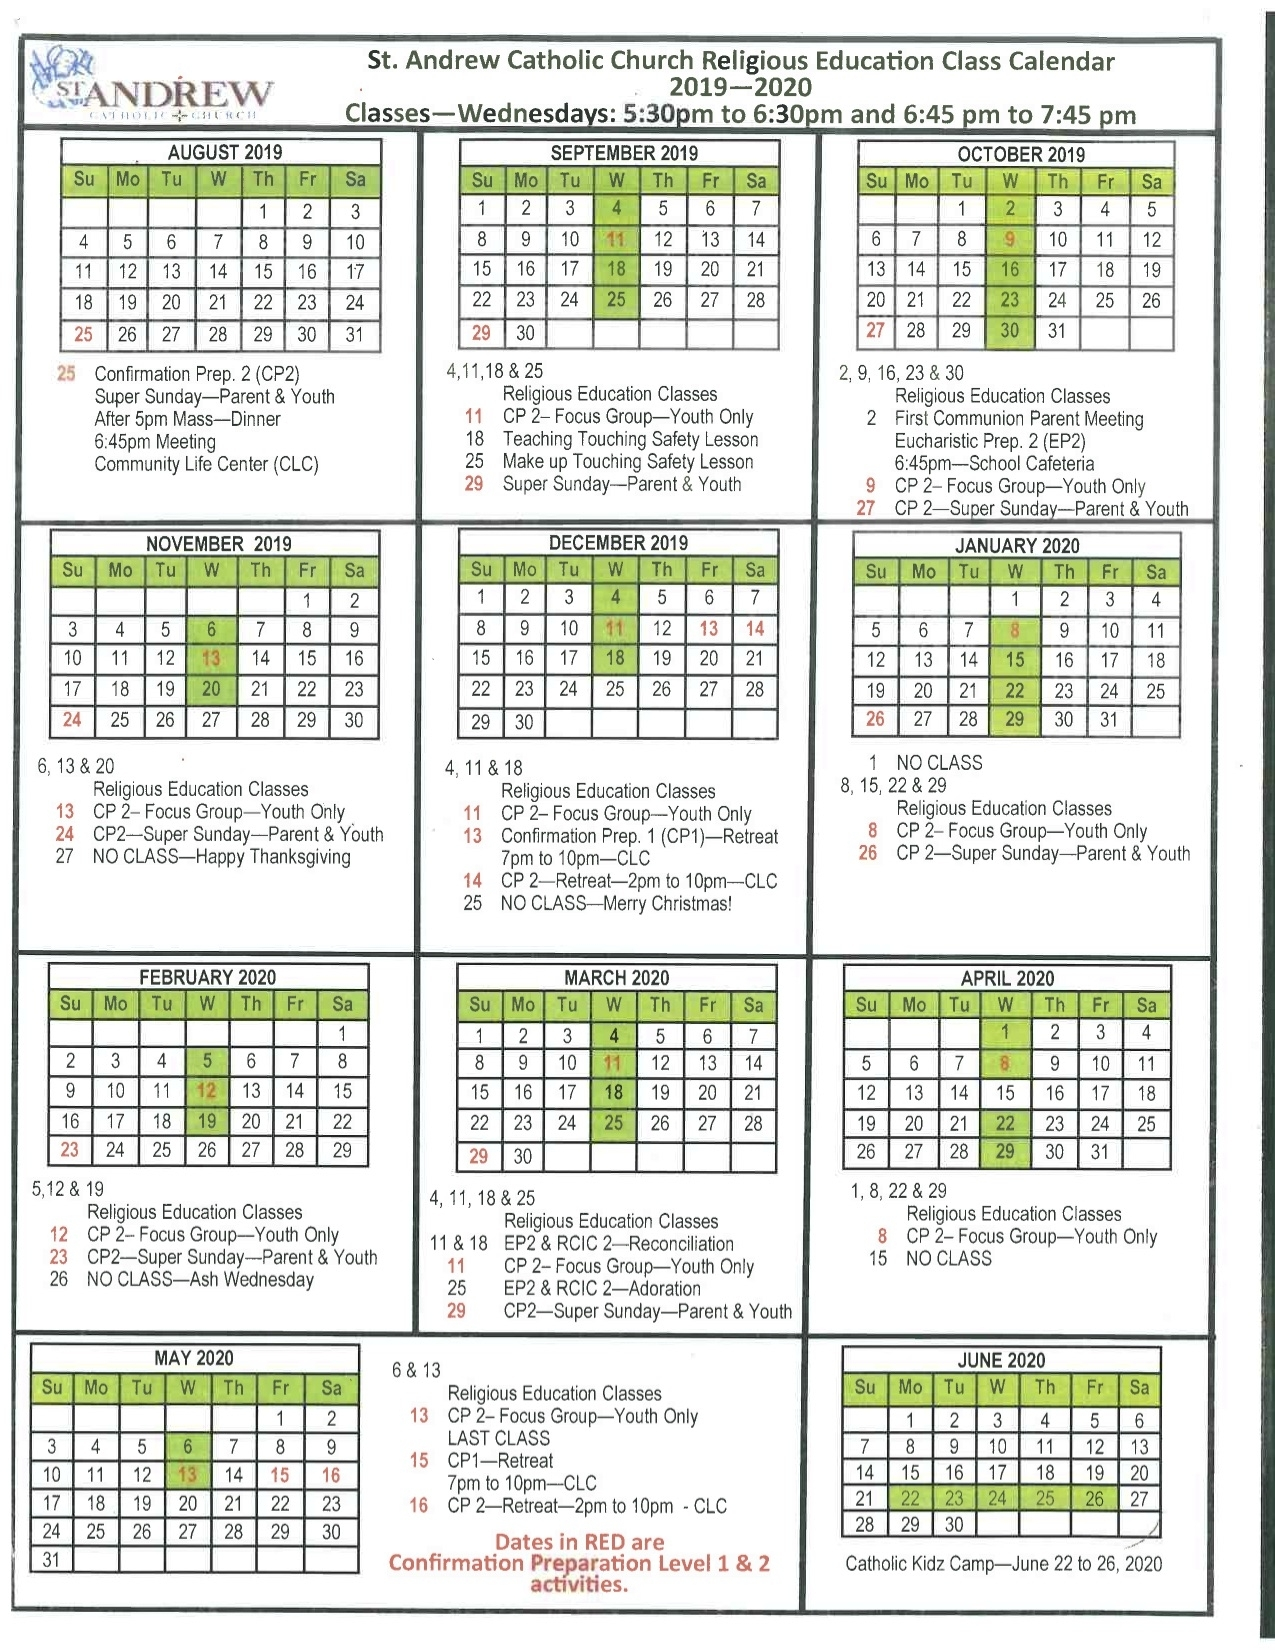 Liturgical Calendar - St. Andrew Catholic School inside Liturgical Calendar 2019 2020 Catholic